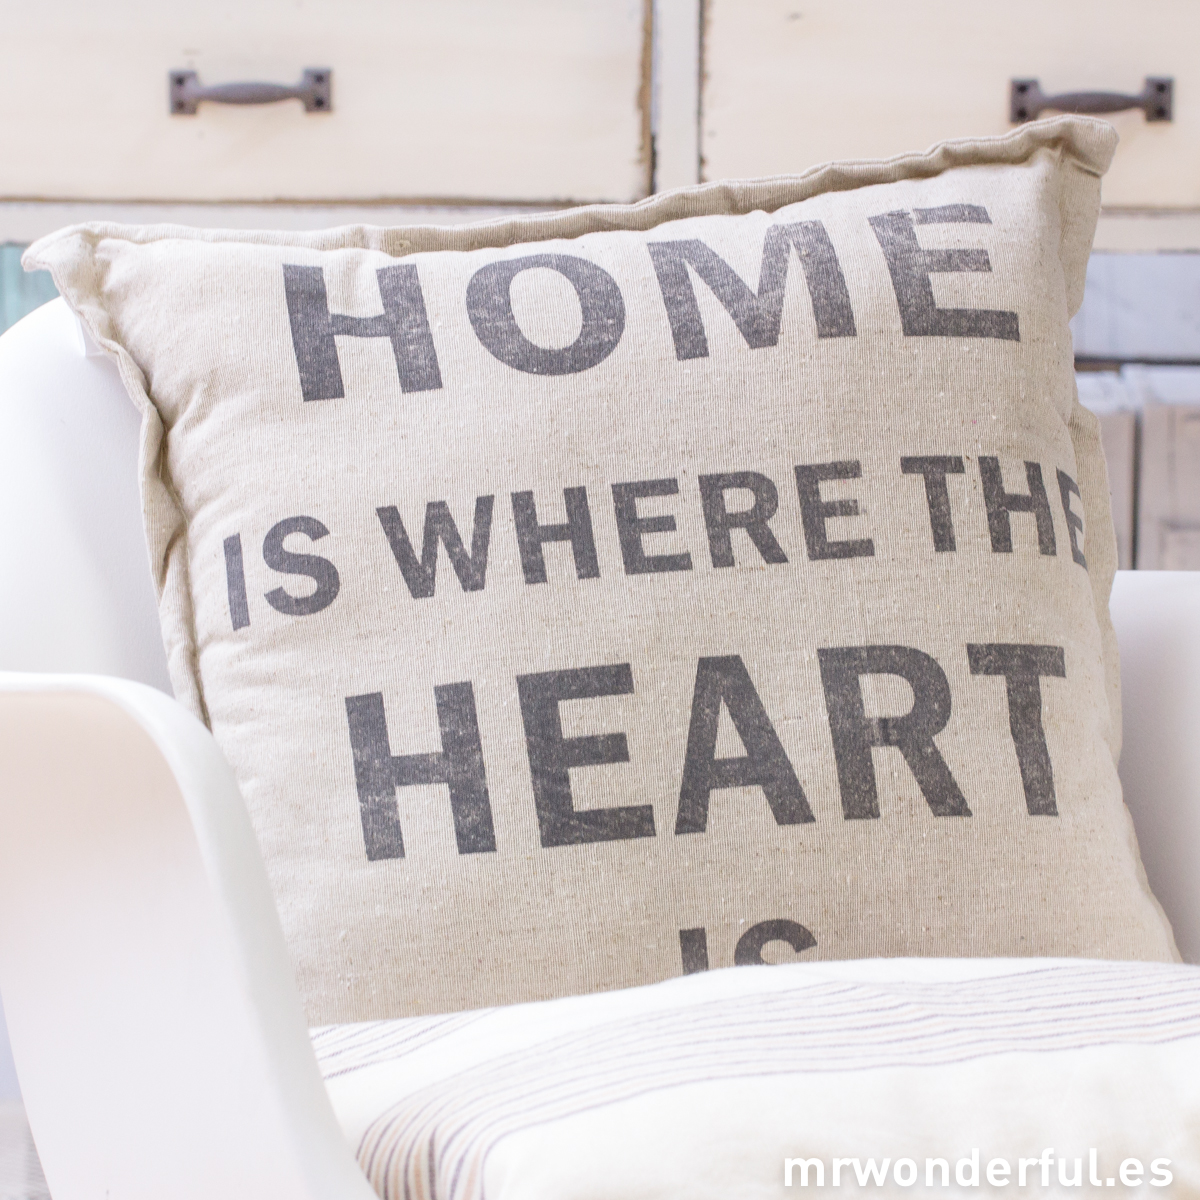 mrwonderful_TX0705_1_cojin-lino-home-is-where-heart-is-1